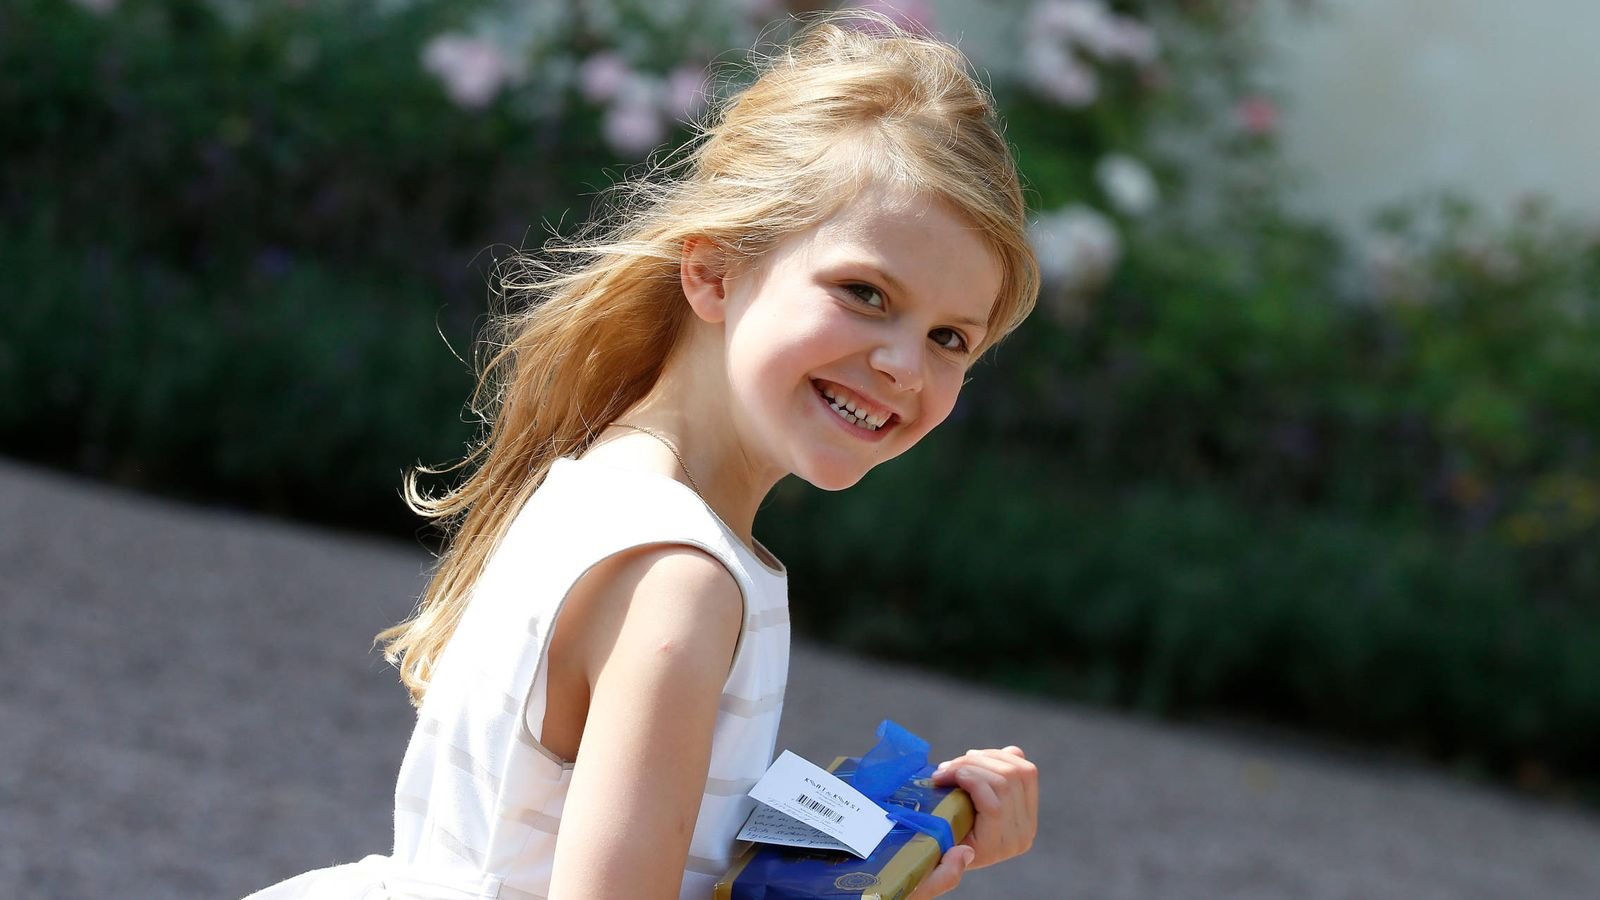 Foto: La princesa Estelle de Suecia. (Getty Images)